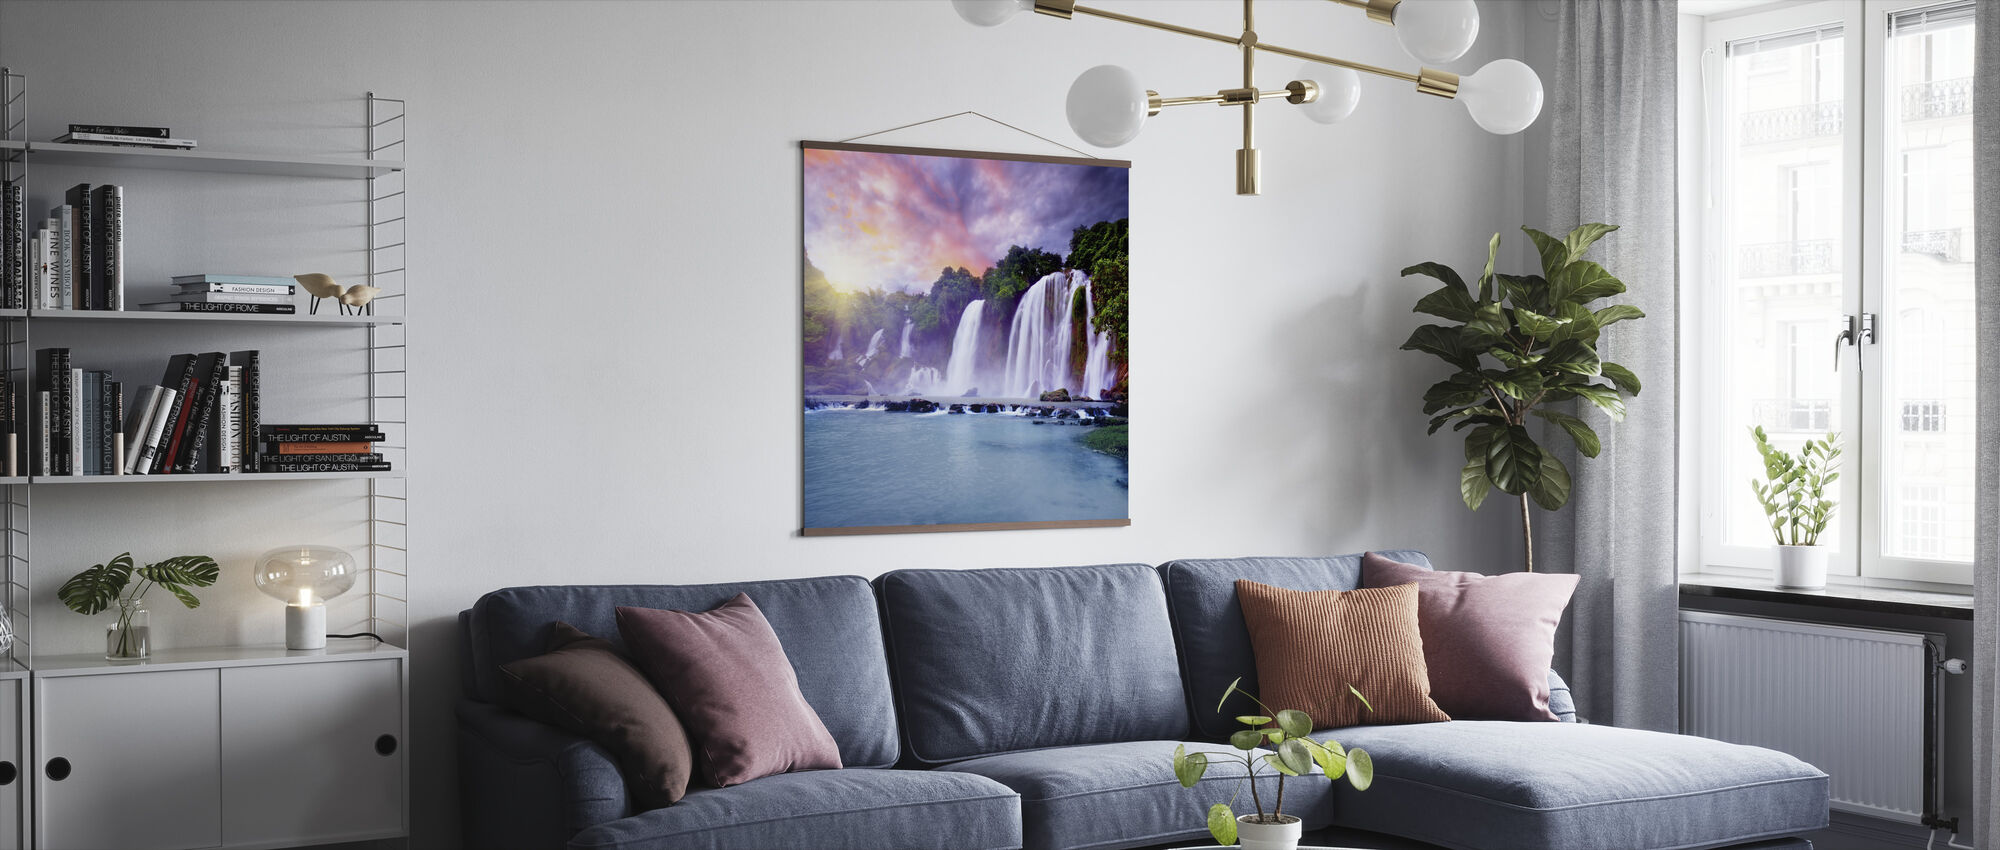 Banyue Waterval - Poster - Woonkamer